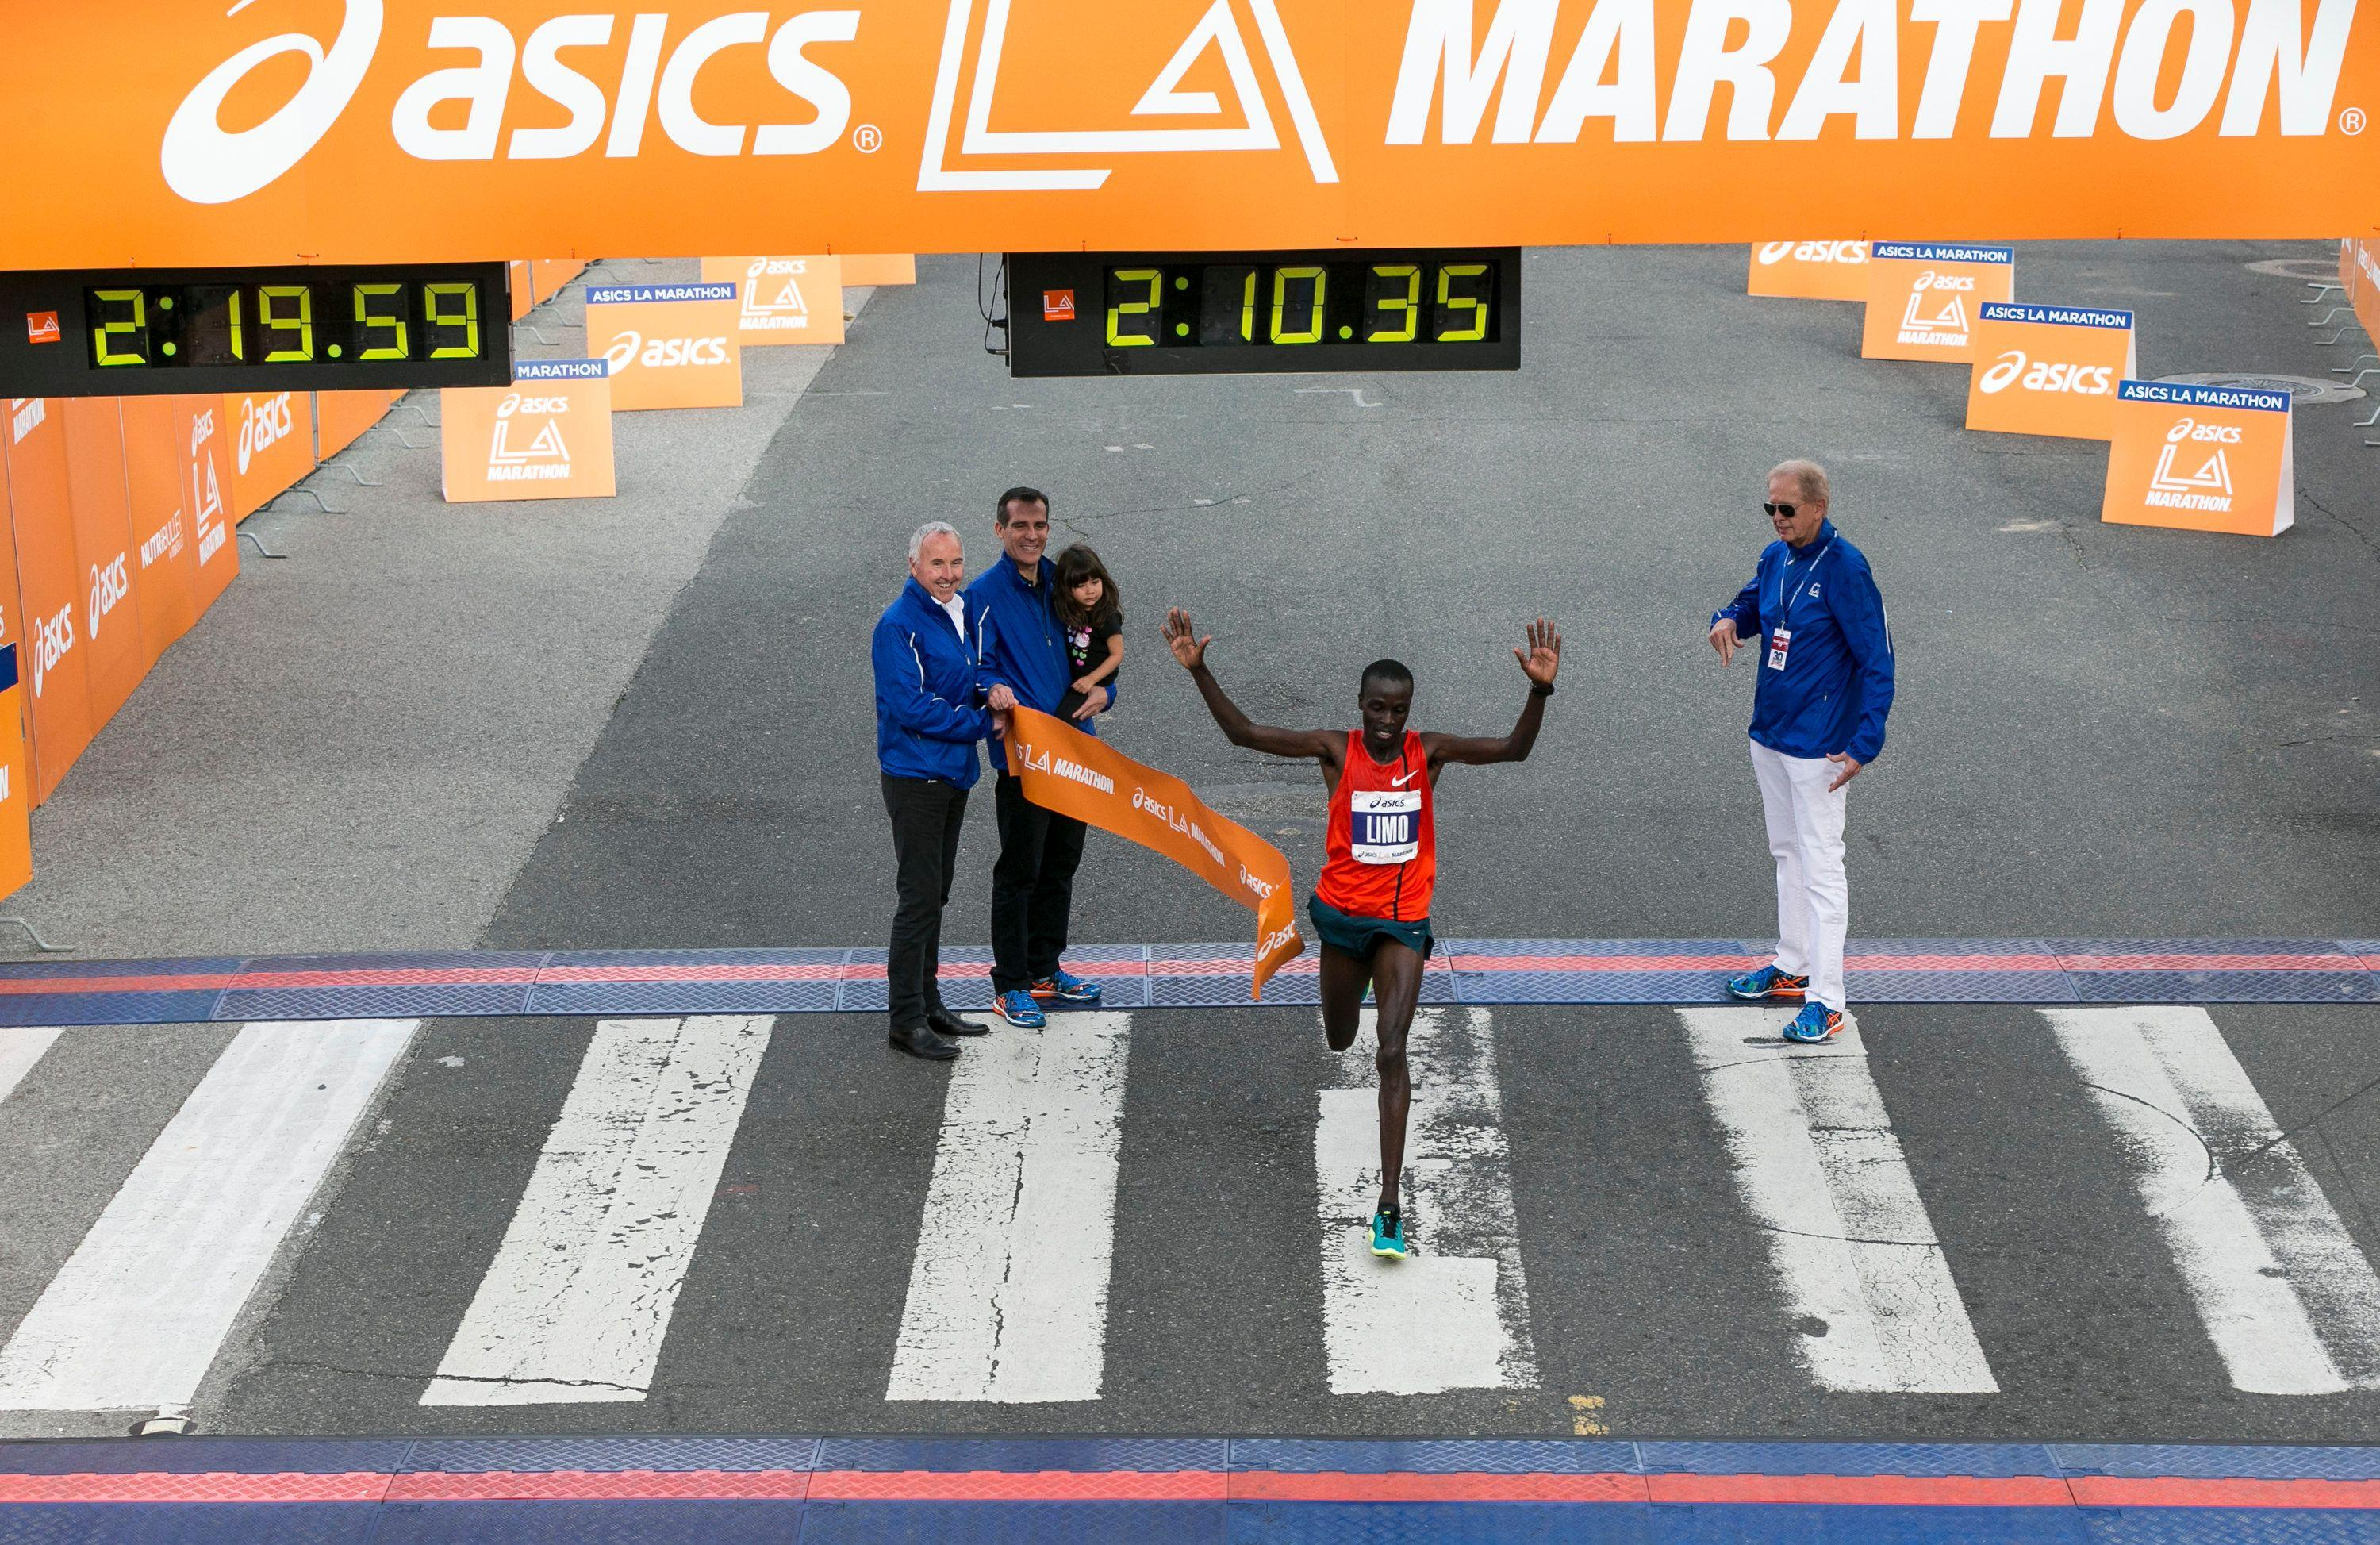 Asics: We want to 'win in running' in 2019